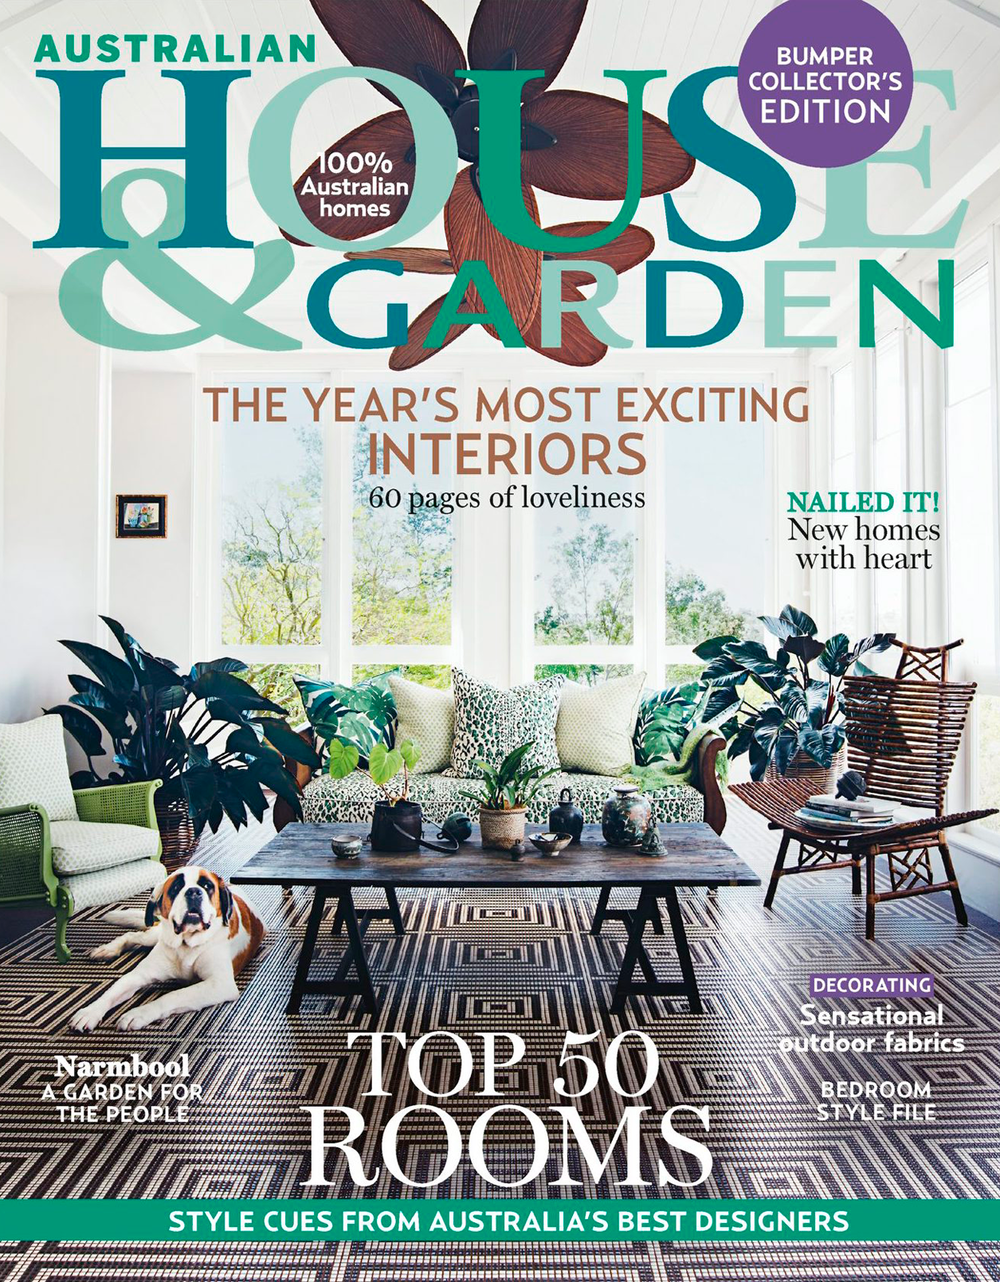 stylemerhcants-housegarden-top50rooms-3.png